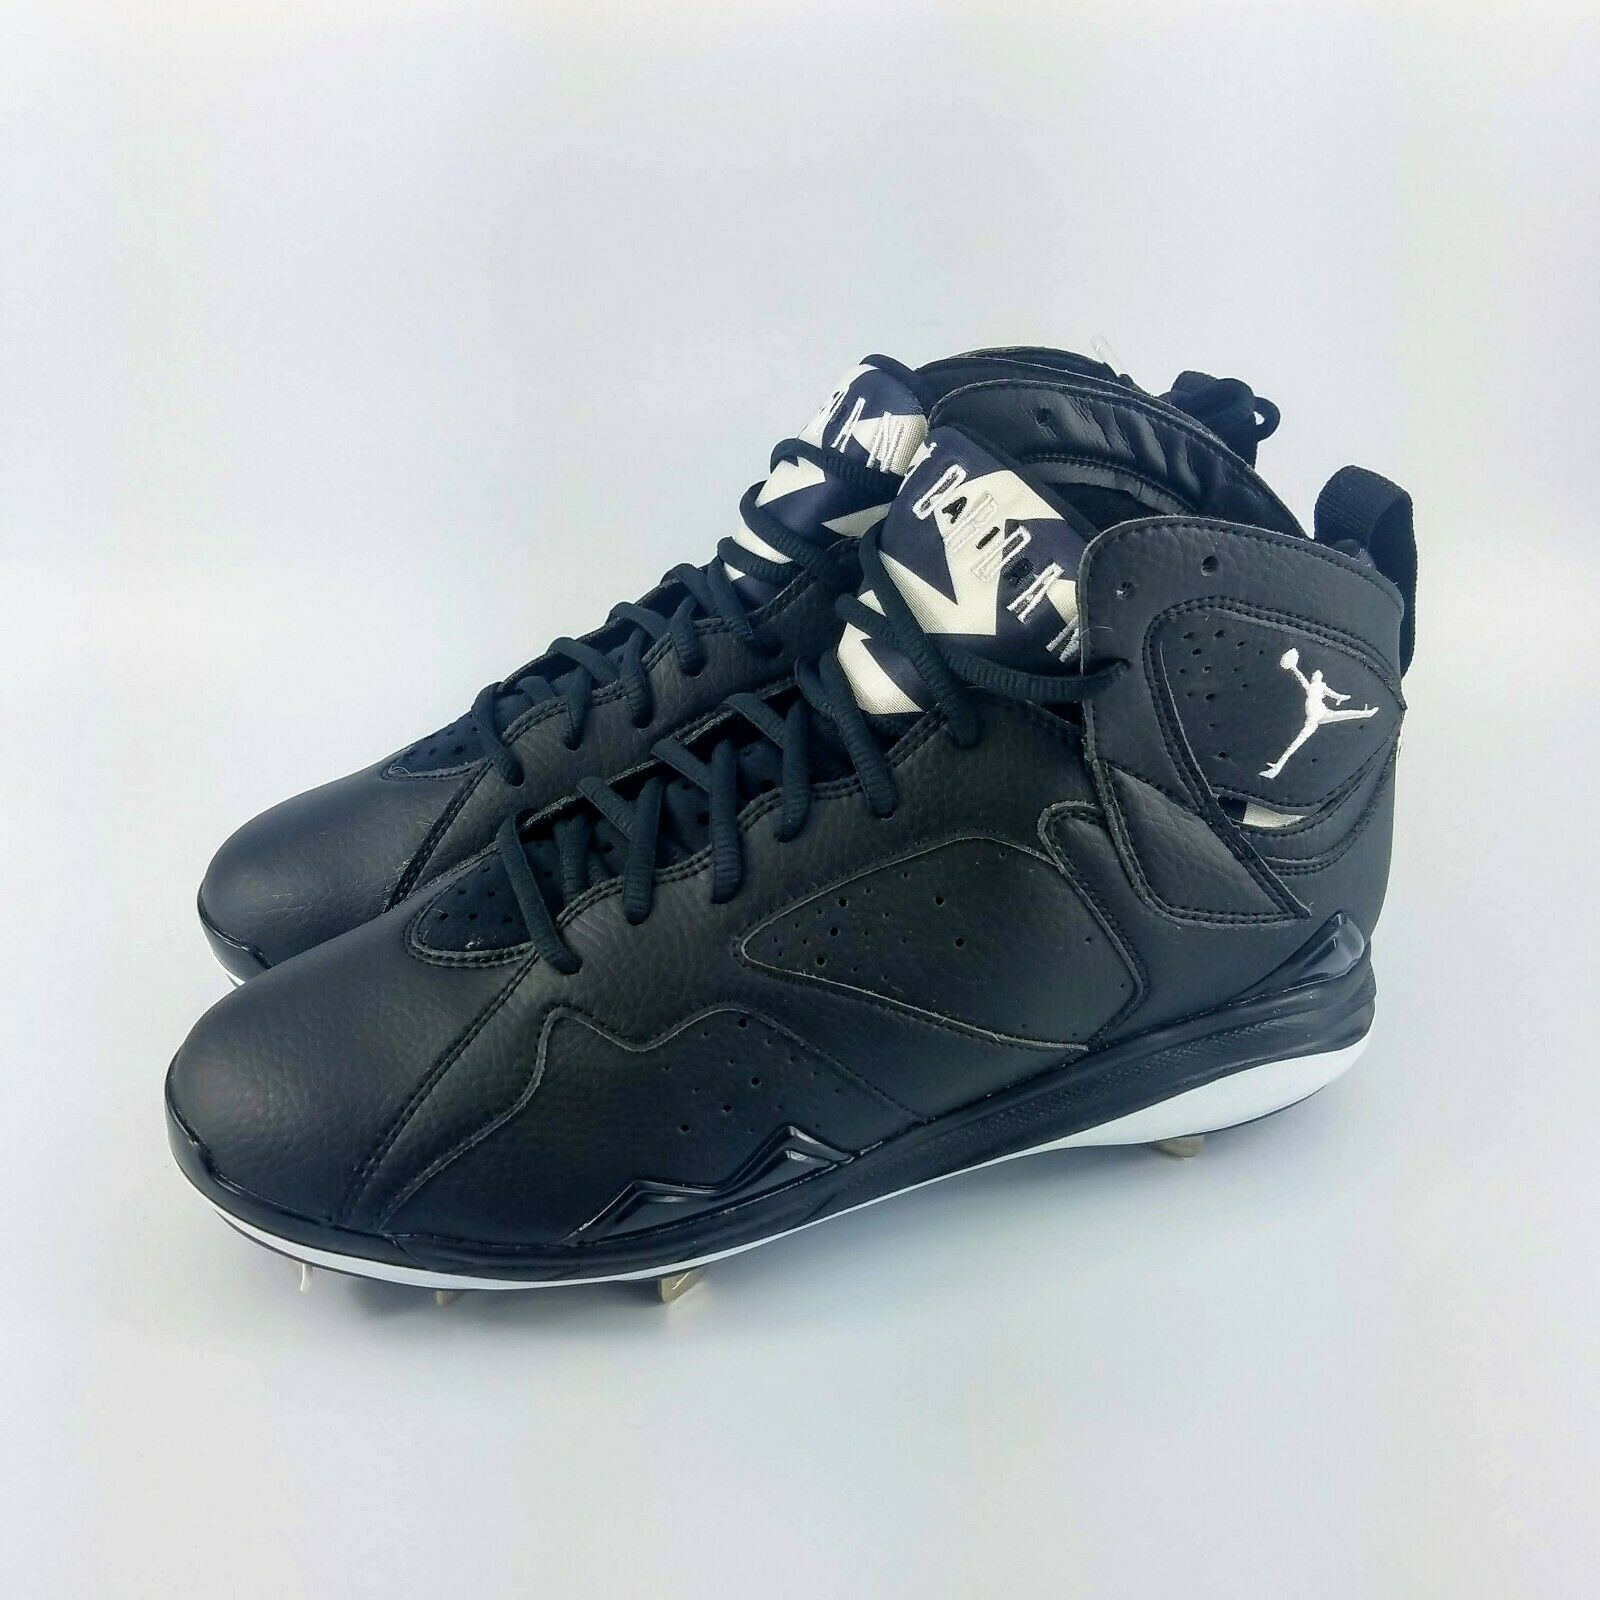 Nike Air Jordan Retro 7 Baseball Metal Cleats - Black  - 684943-010 - Size 10.5